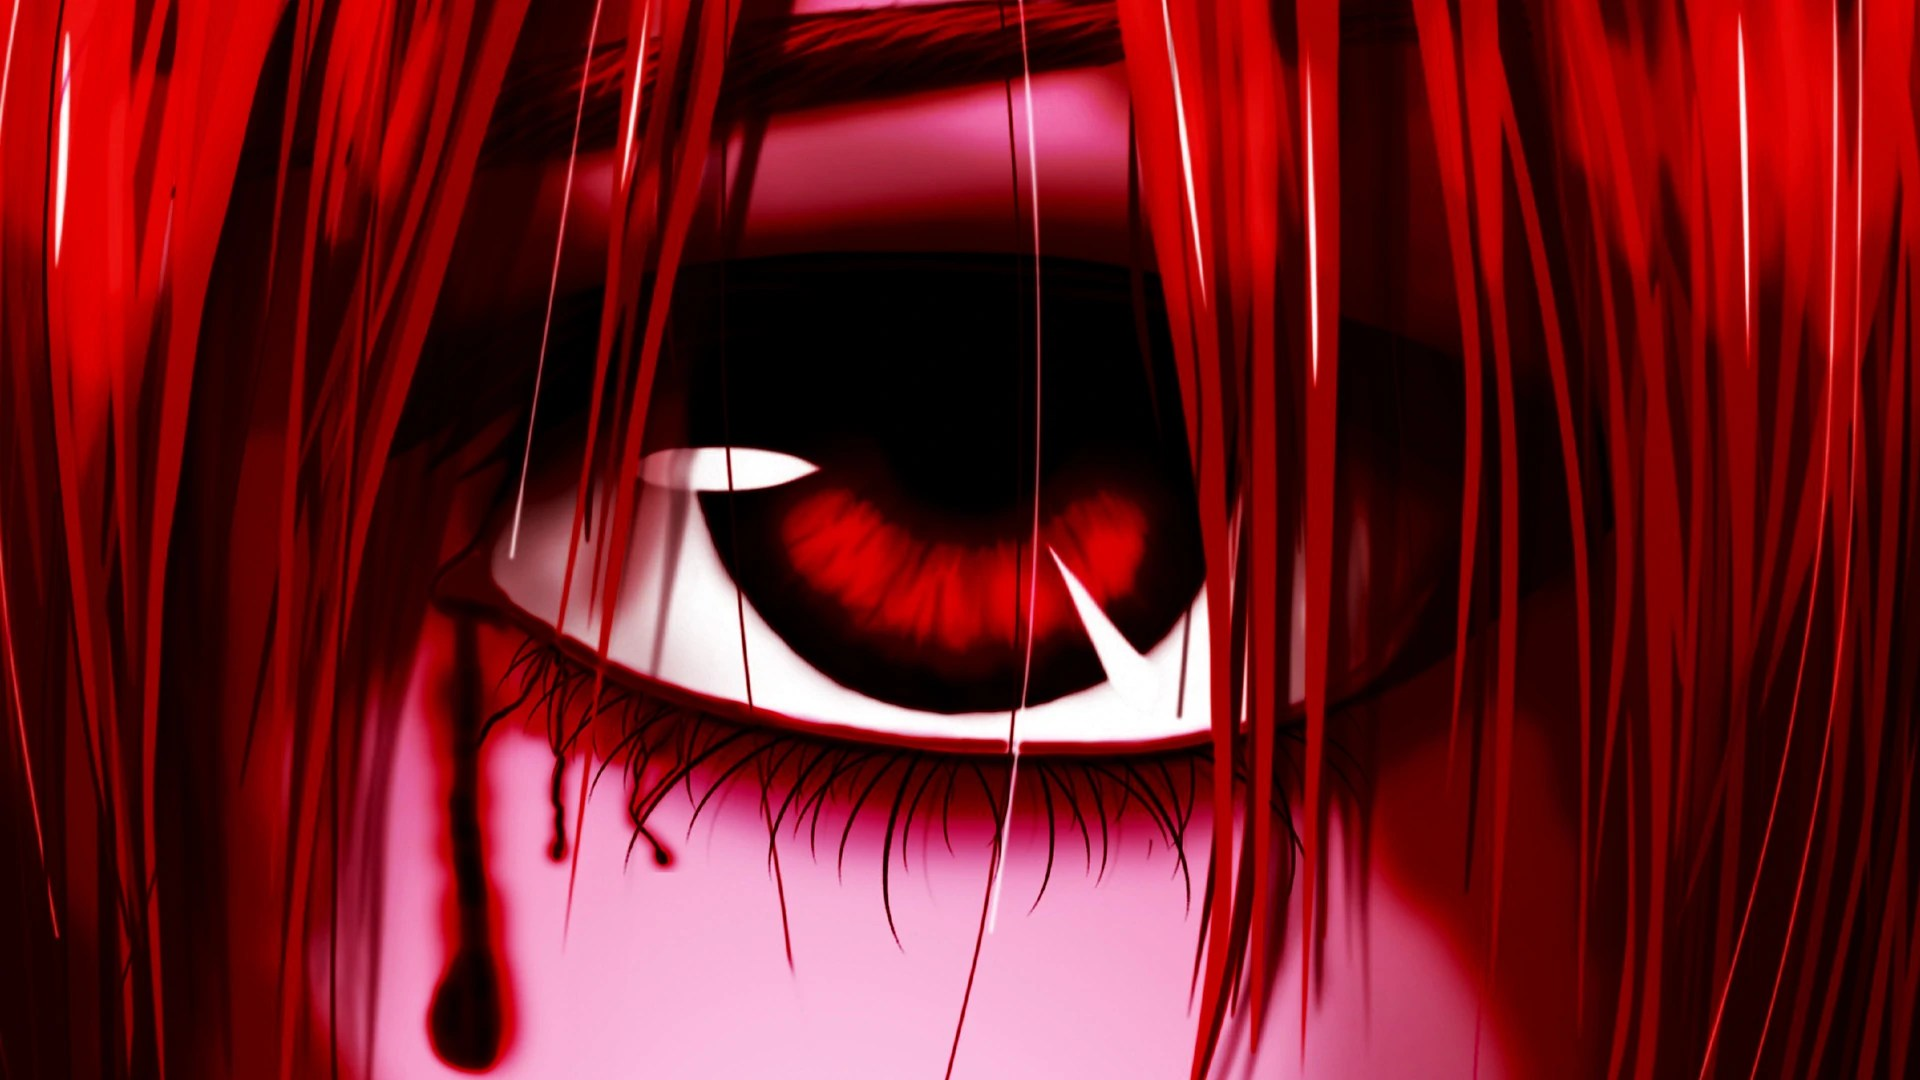 Image   Elfen lied jpg   Creepypasta Wiki   FANDOM powered by Wikia Elfen lied jpg